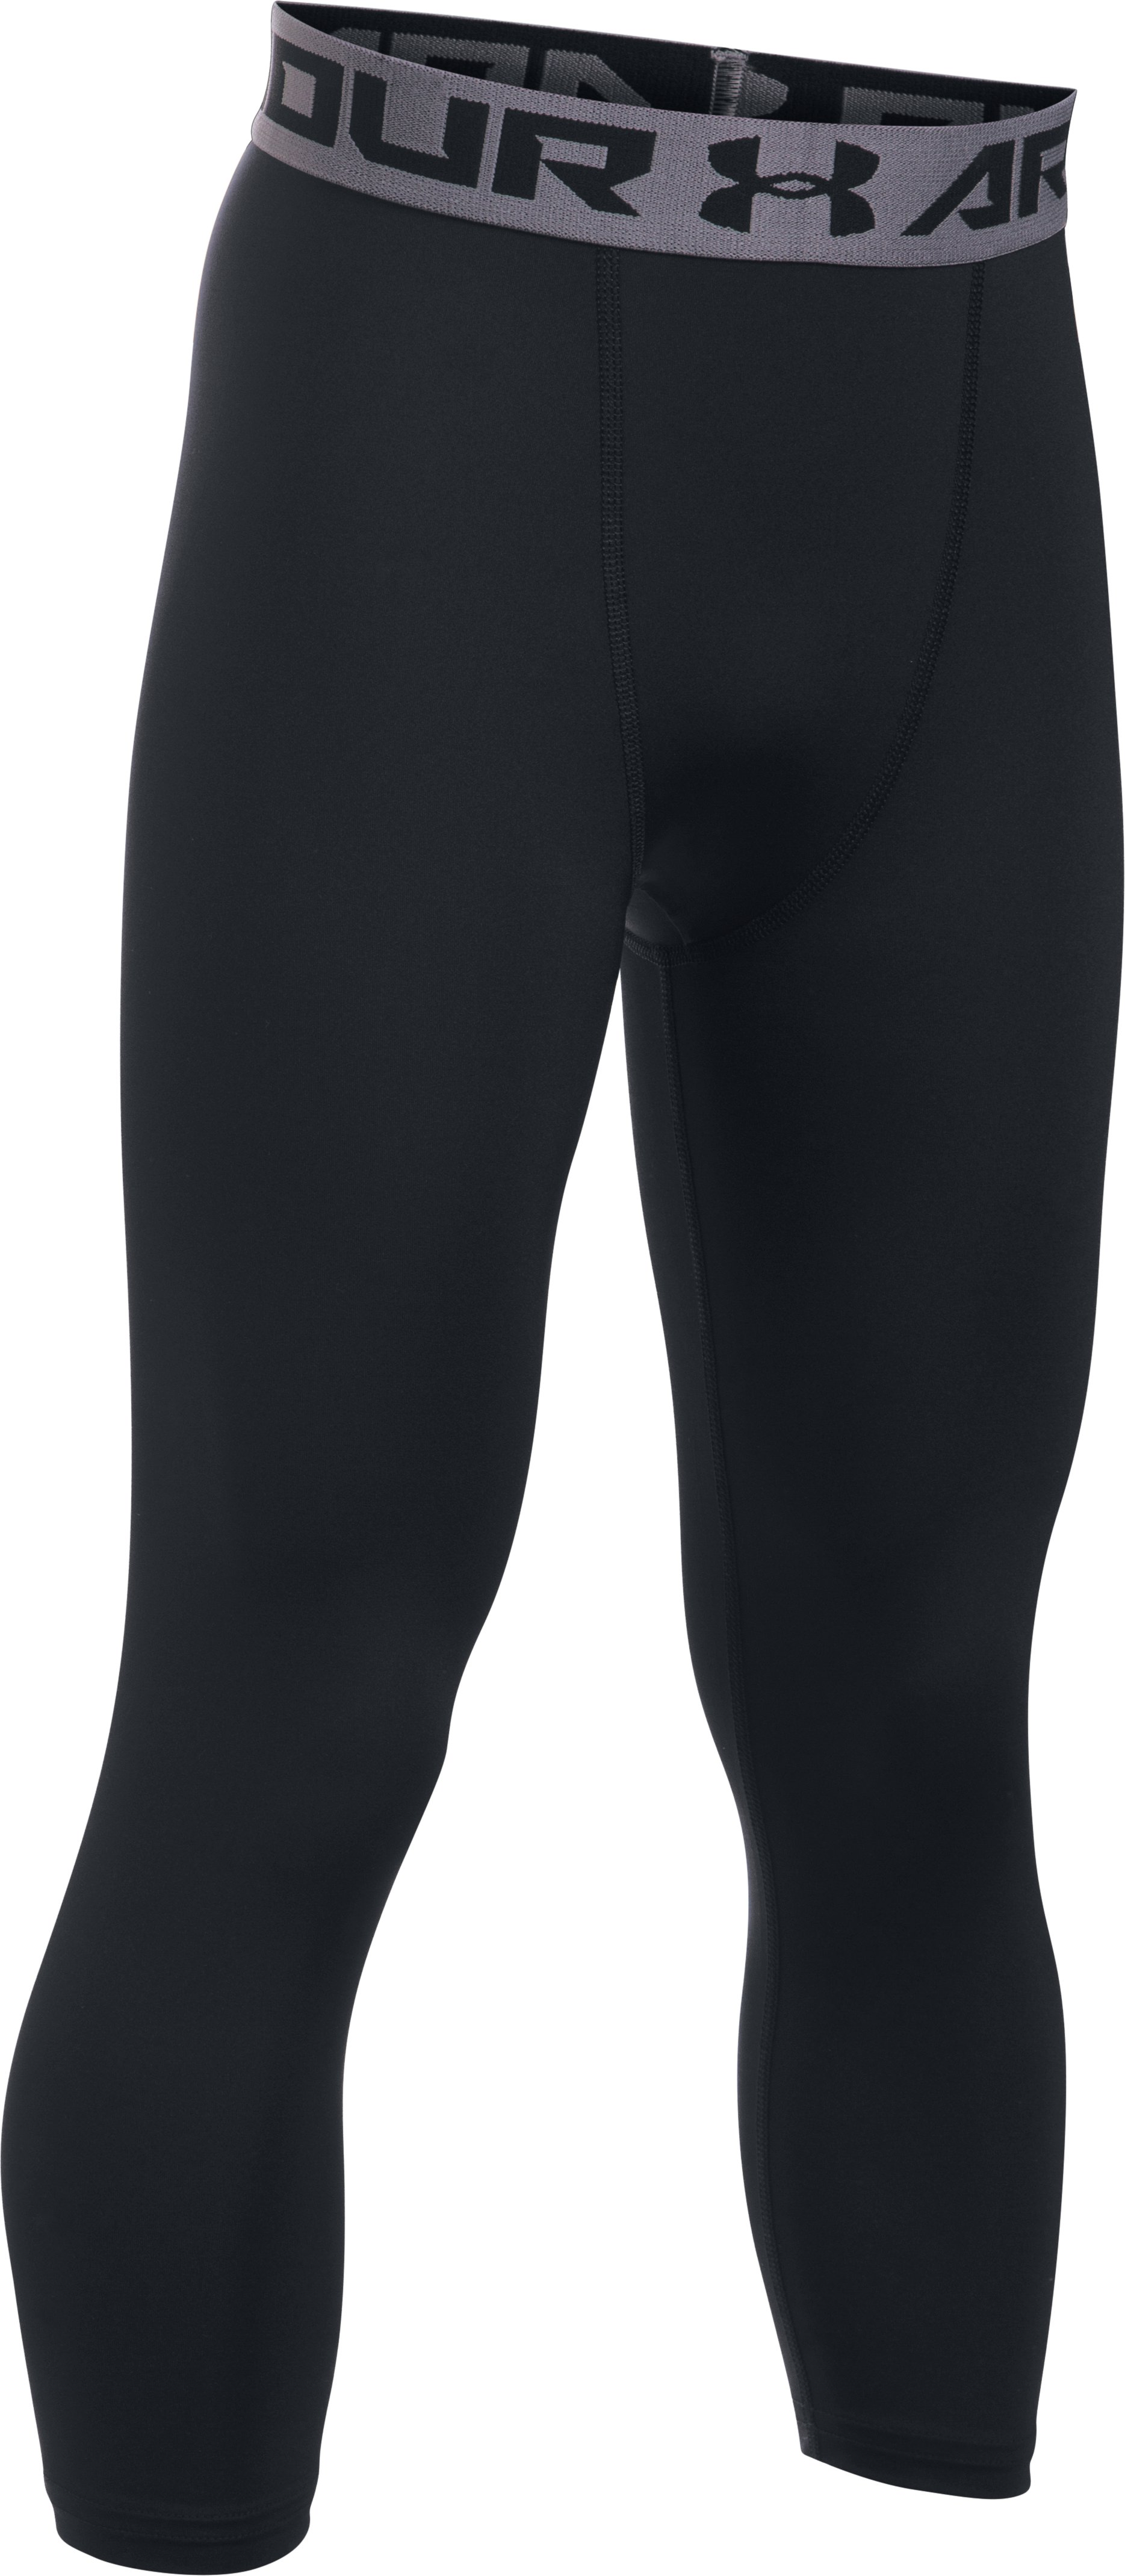 Boys' HeatGear® Armour ¾ Blocked Leggings, Black